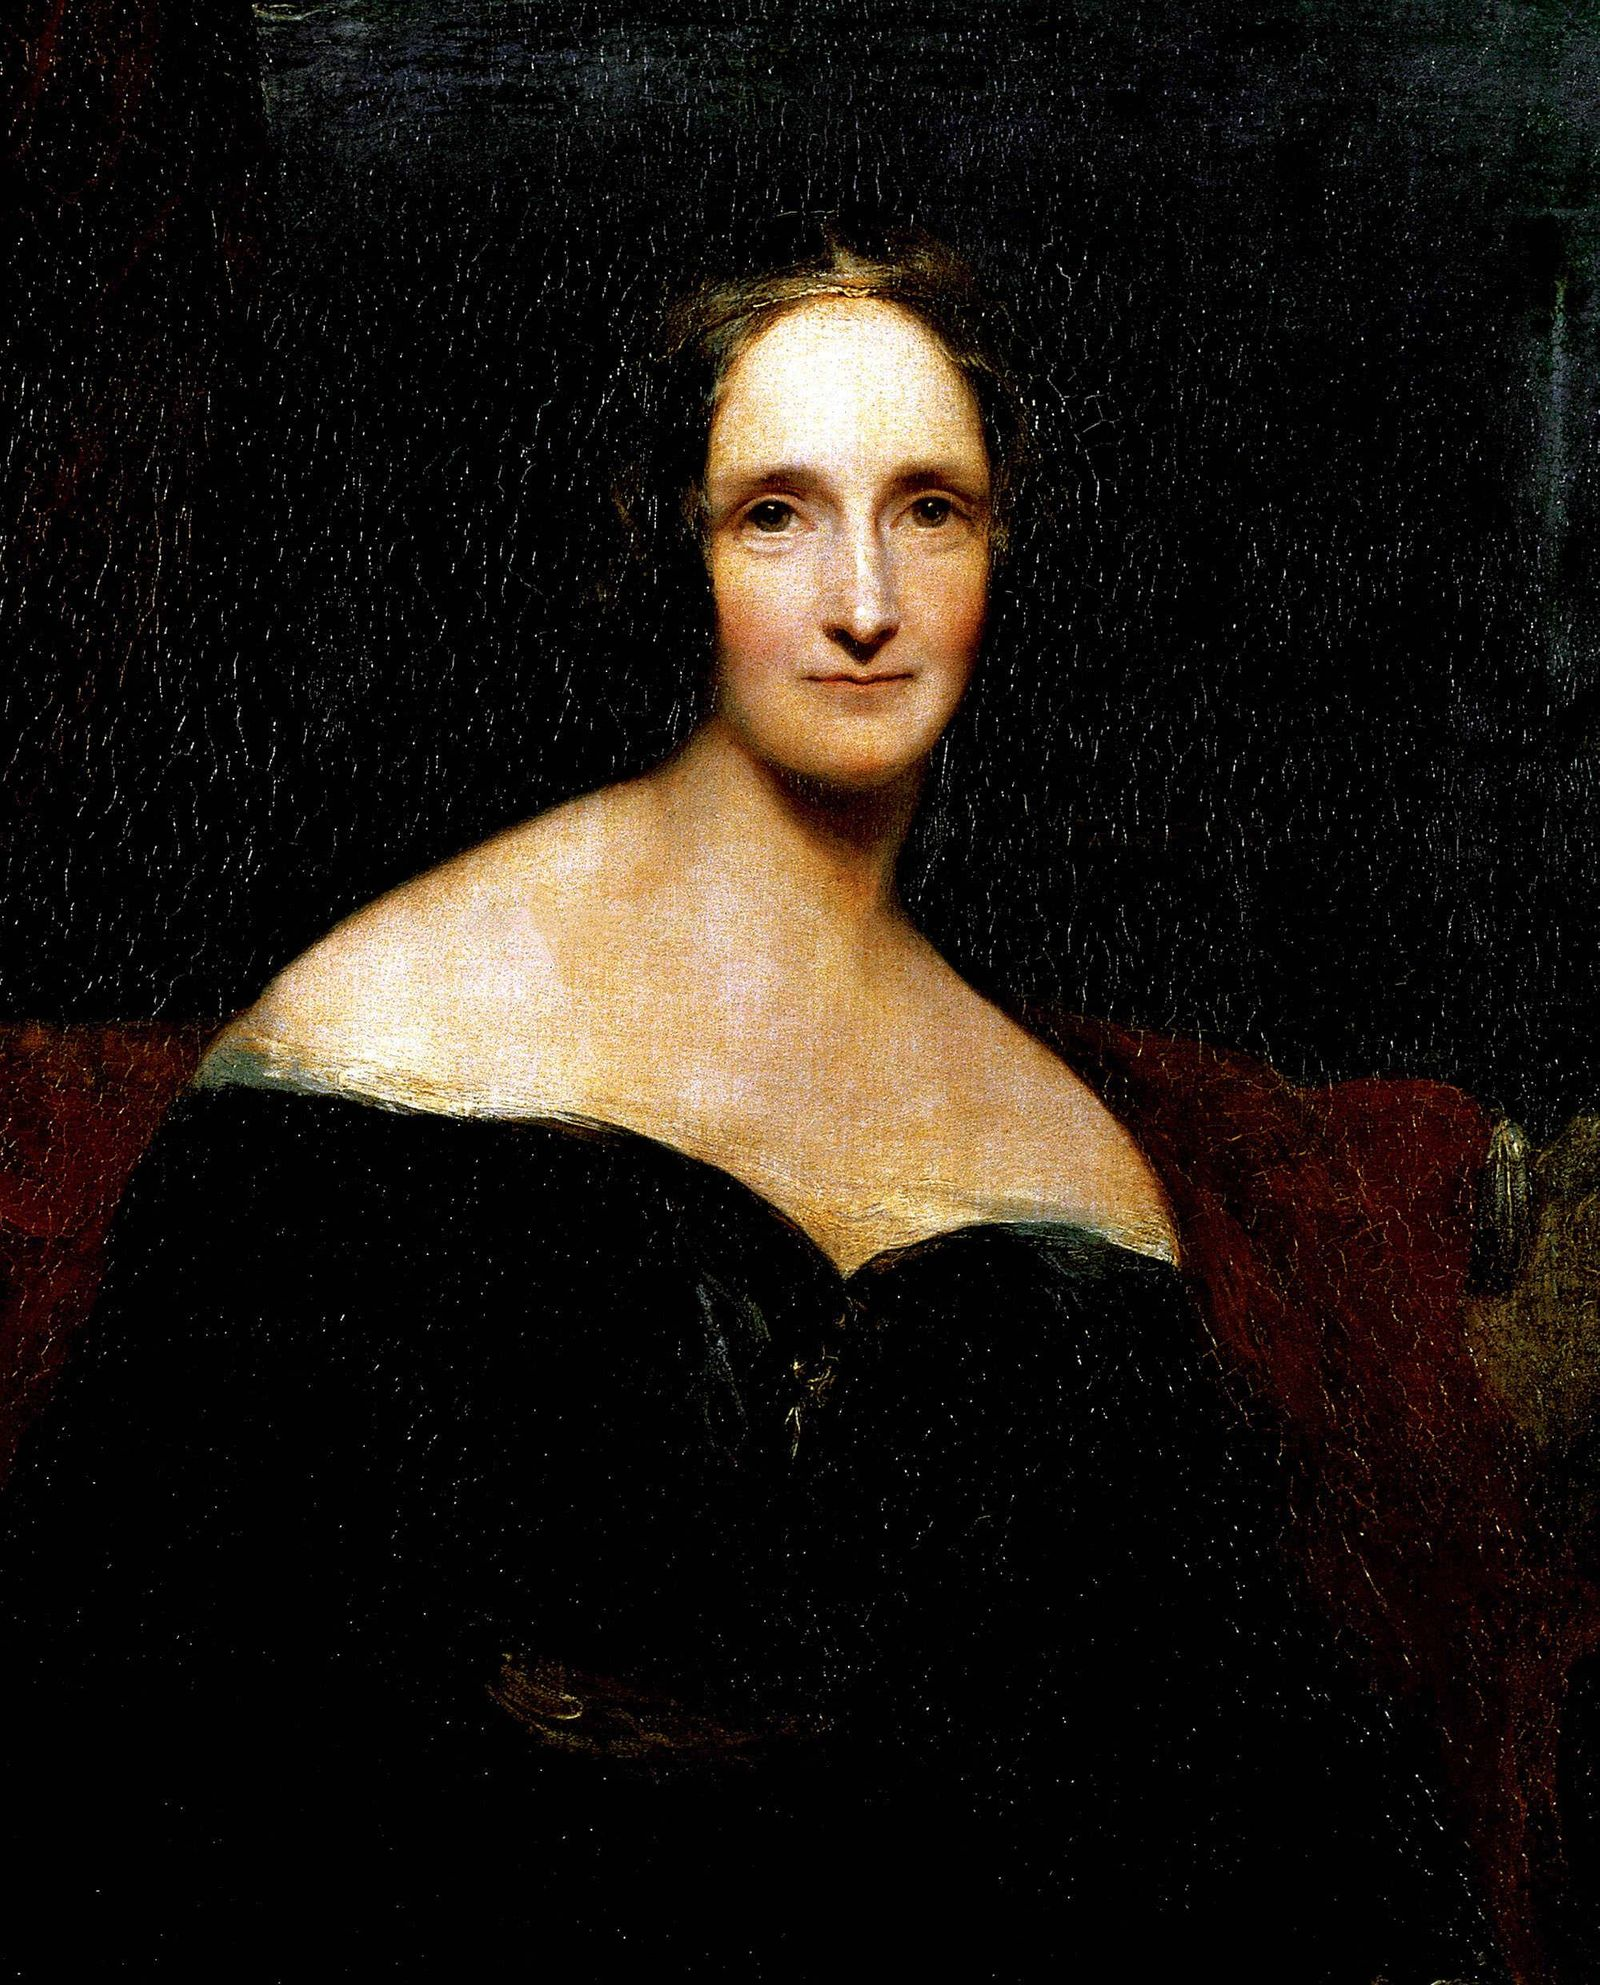 Portrait de l ecrivain britannique Mary Wollstonecraft Shelley 1797 1851 Peinture de Richard Roth